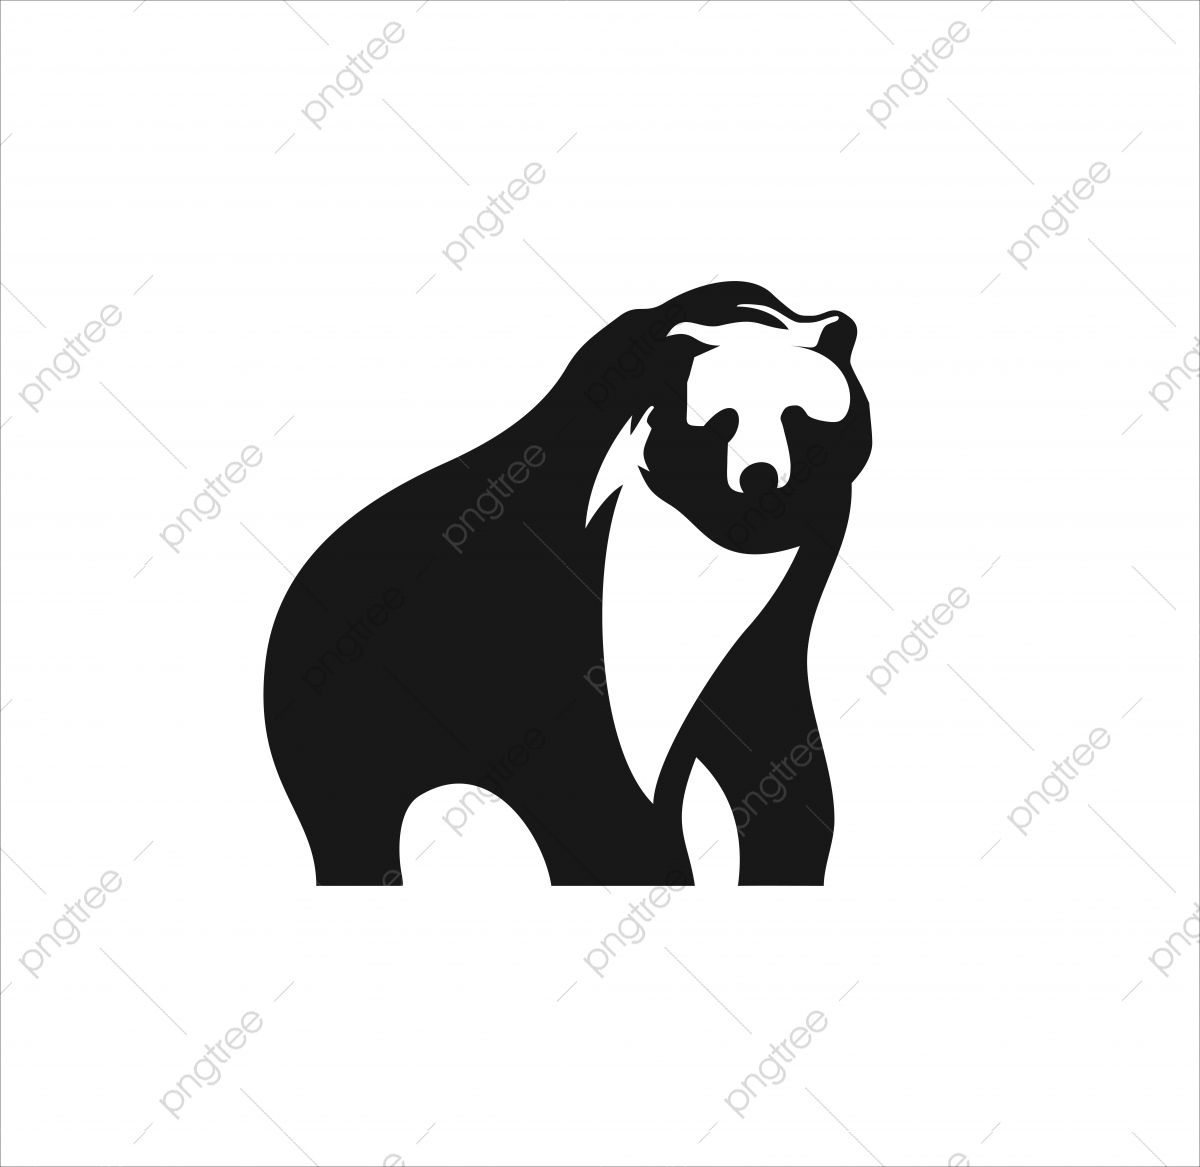 bear logo design icon vector logo icons bear icons illustration png and vector with transparent background for free download https pngtree com freepng bear logo design icon vector 5229803 html